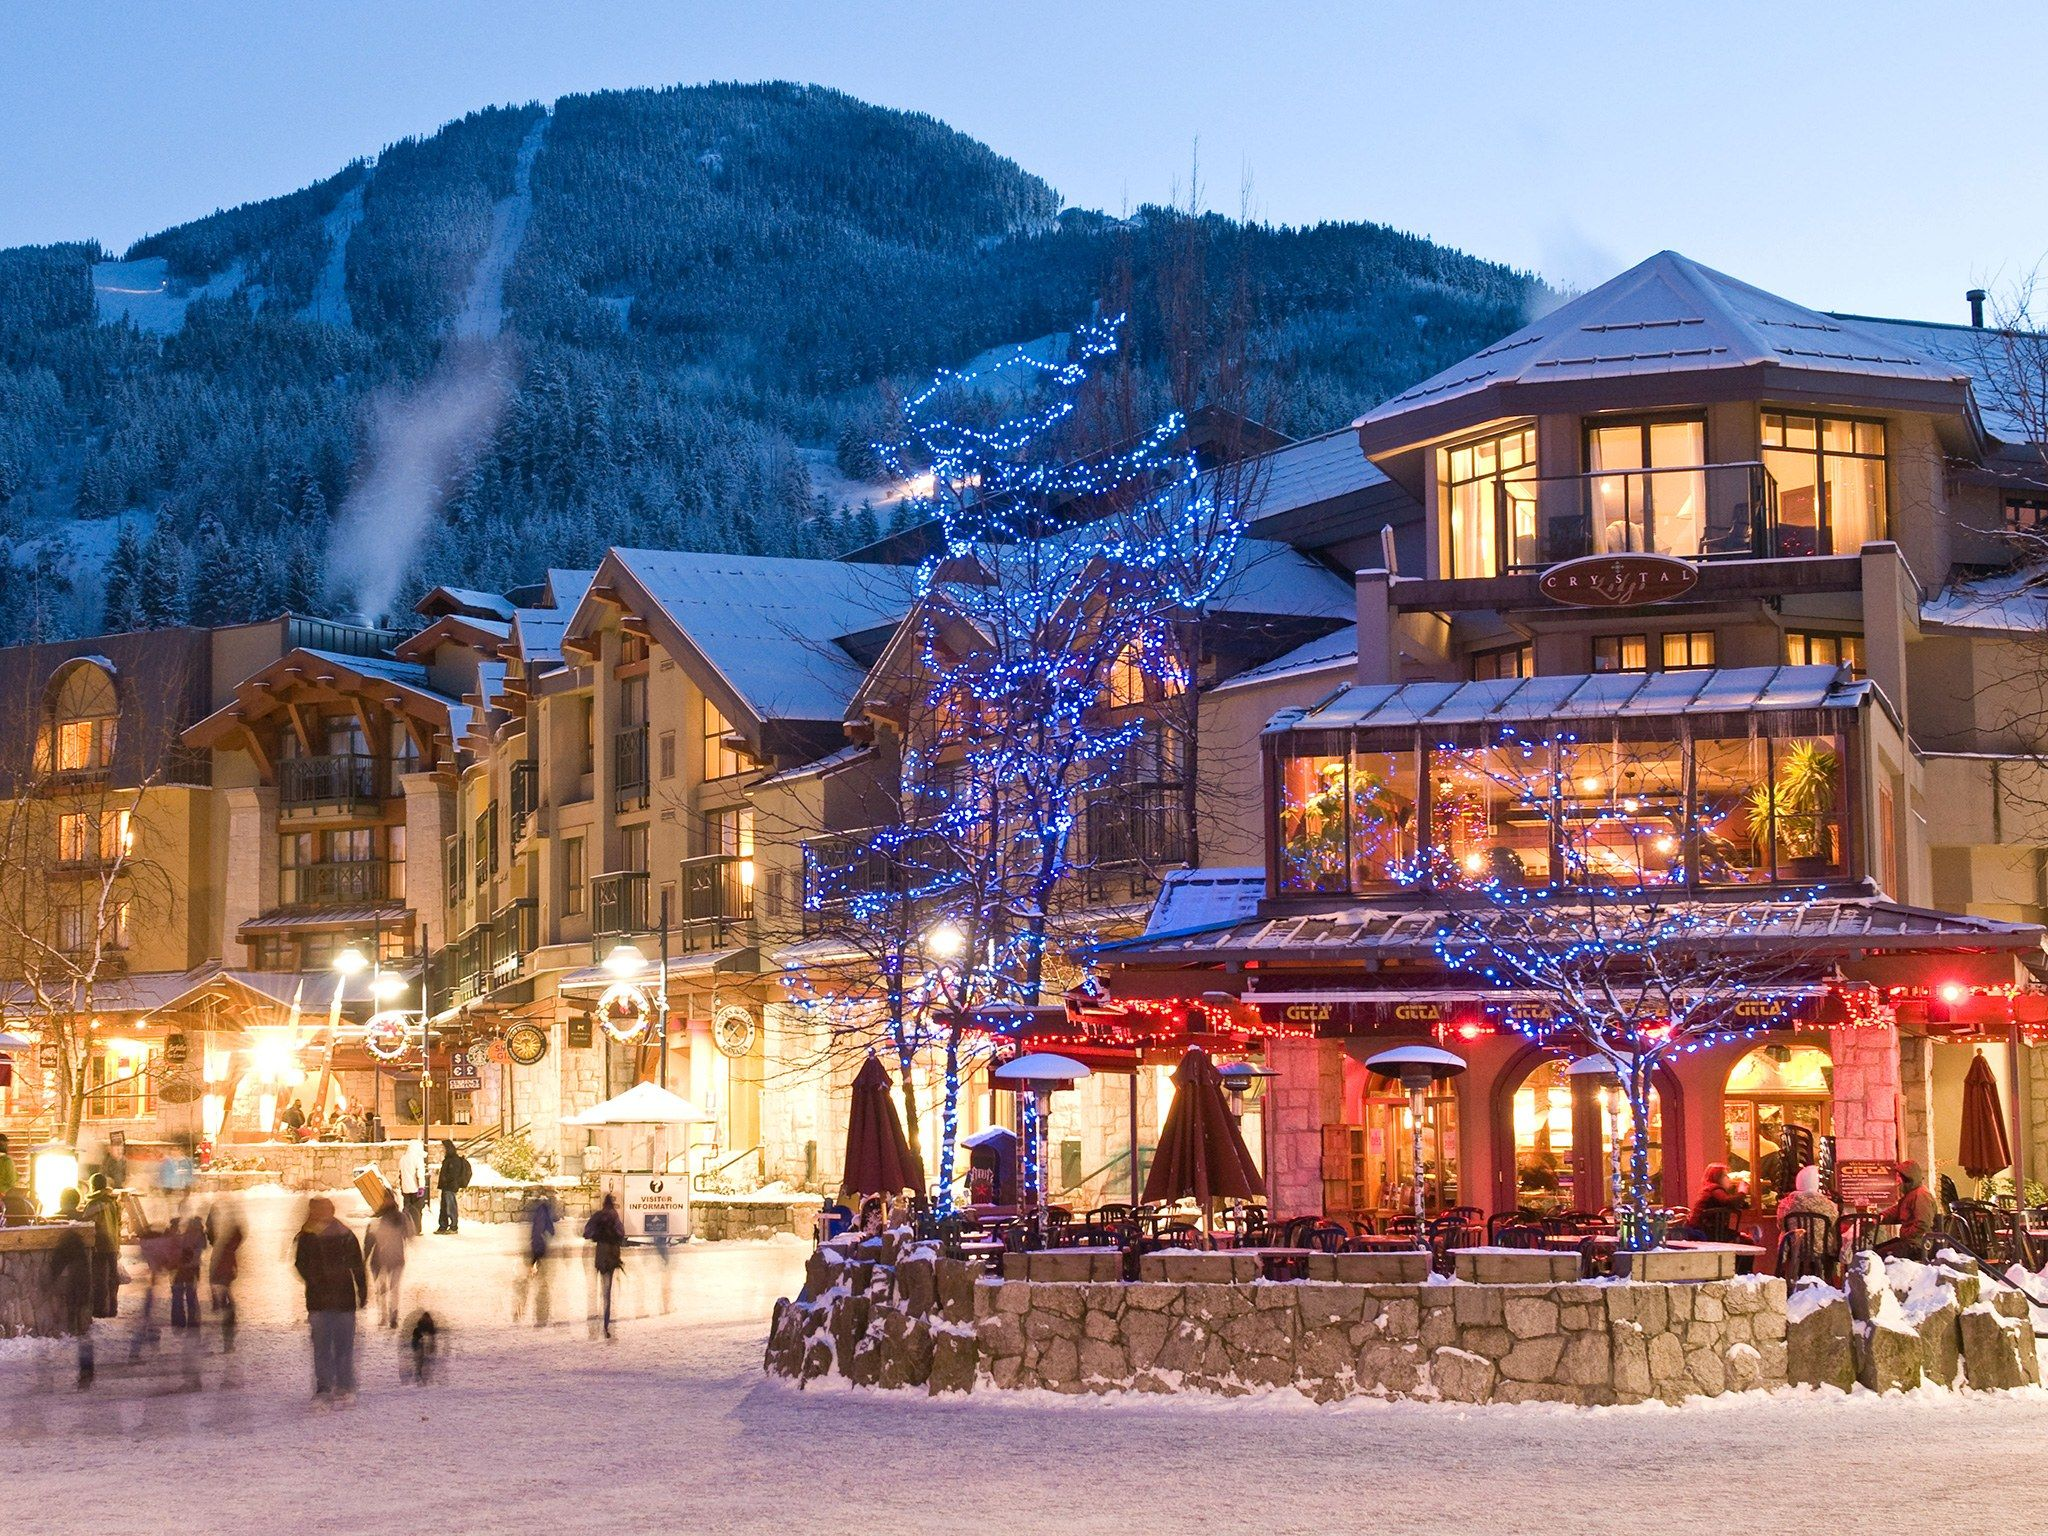 the best ski resorts in the u.s. and canada, according to our